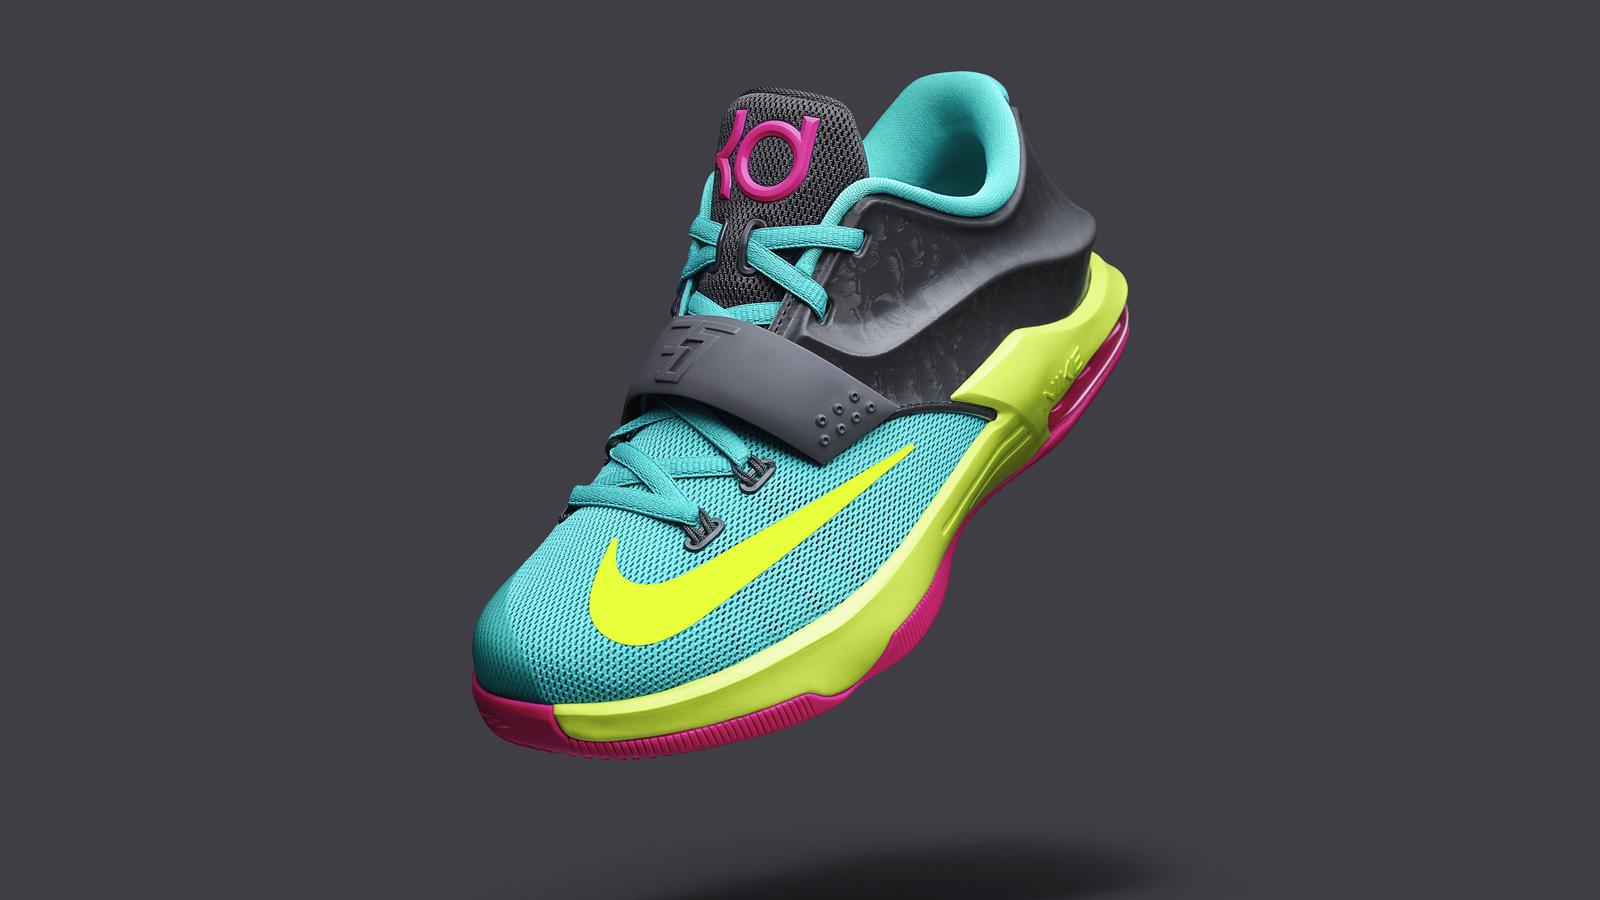 size 40 34a7e 18834 Nike Unveils KD7 Carnival for Young Basketball Athletes - Nike News